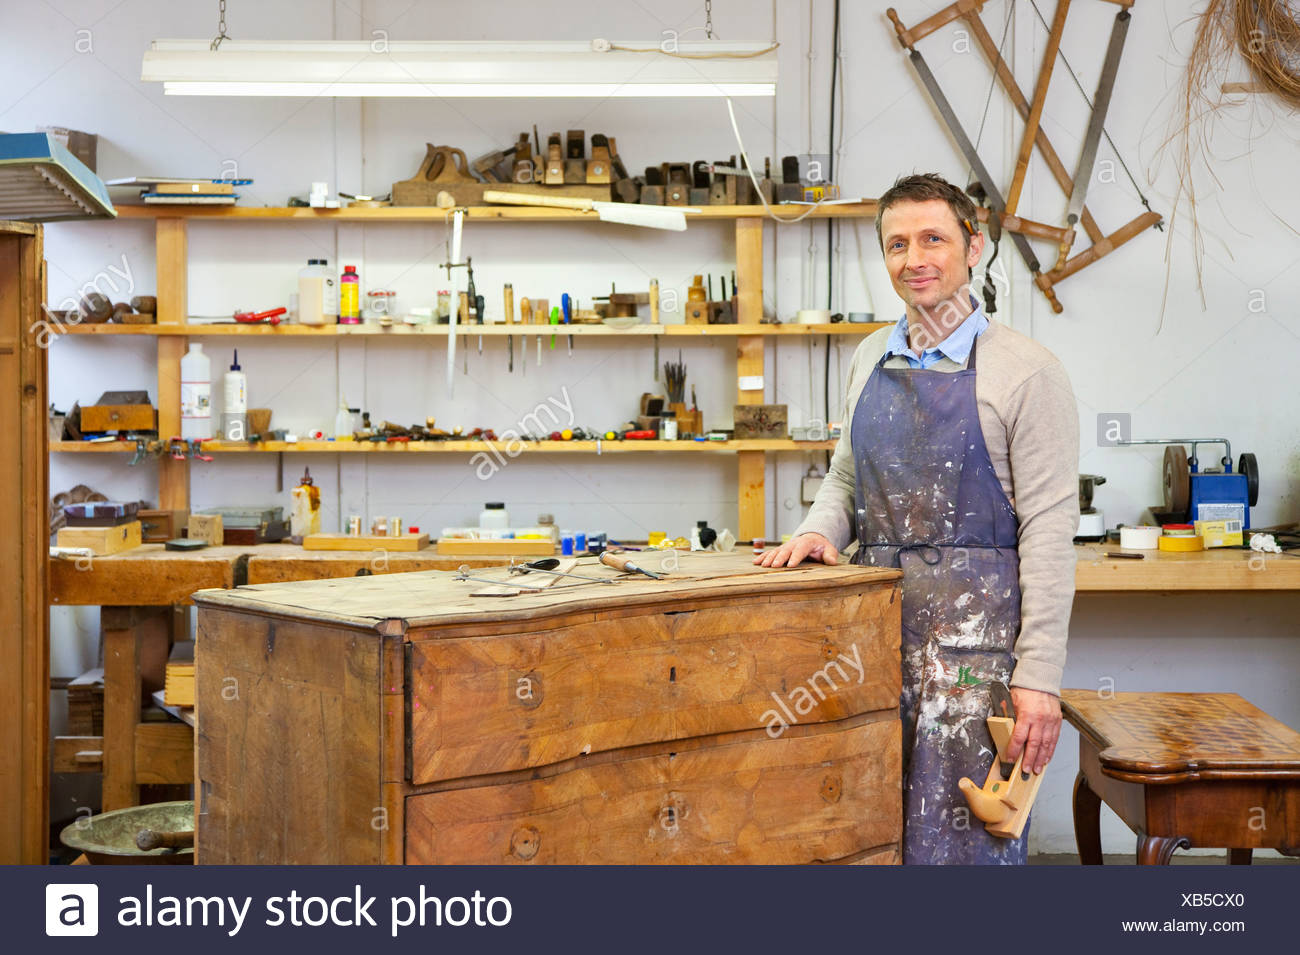 Carpenter working on wooden drawers - Stock Image